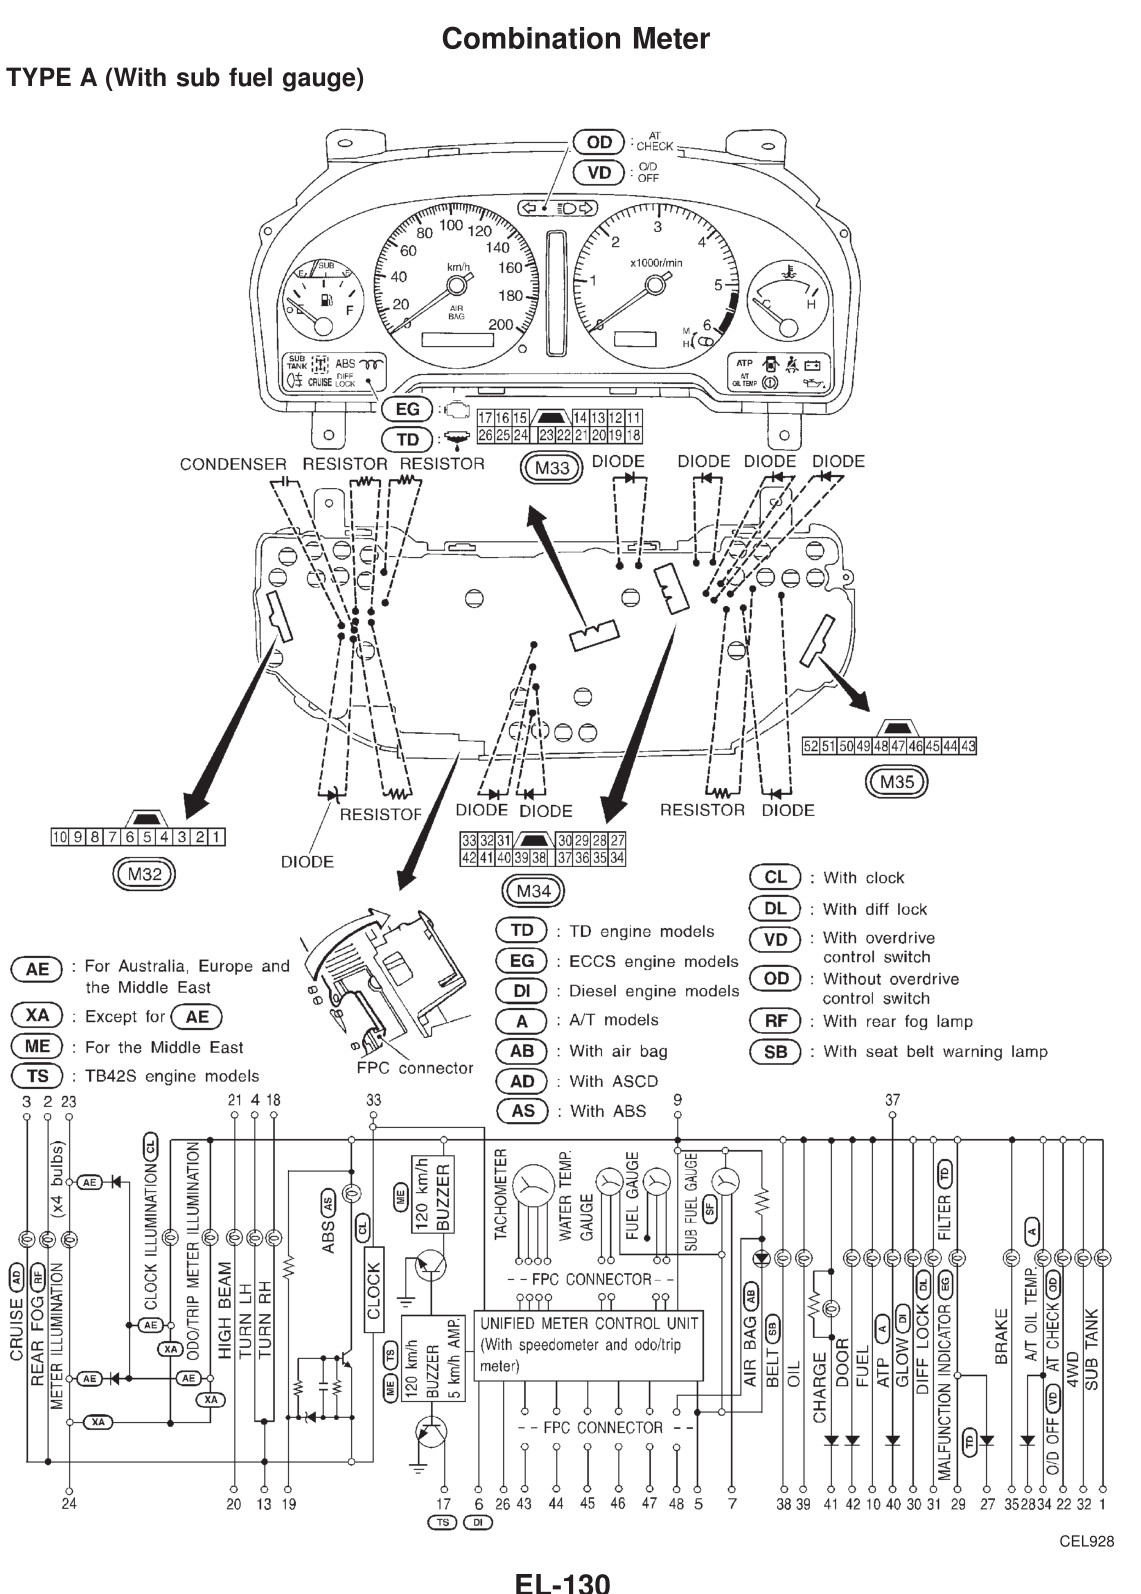 nissan patrol central locking wiring diagram wiring library 2004 Buick LeSabre Fuse Box Location tachometer wire nissan patrol gu y61 stereo wiring diagram